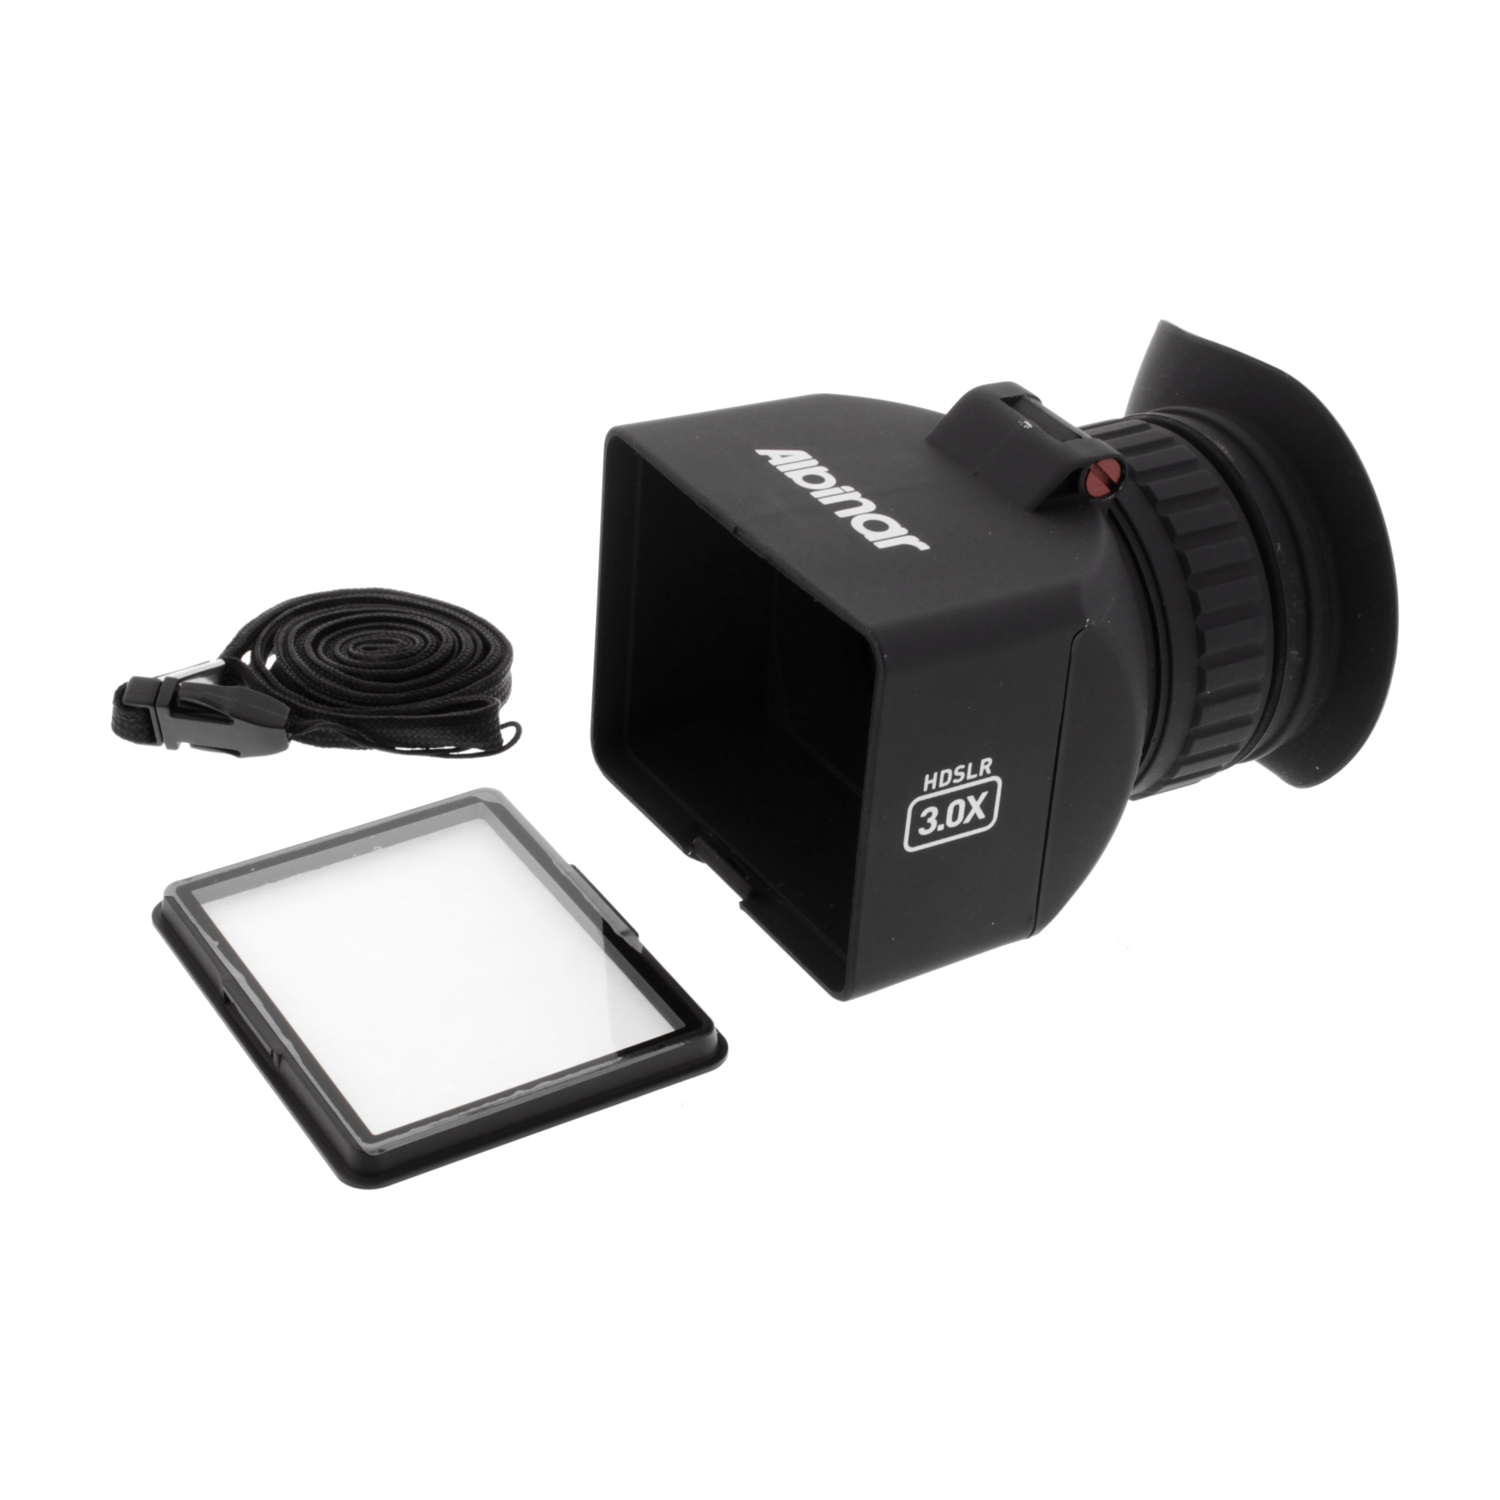 Albinar Vf 5 3 0x Magnification Hd Dslr Foldable Lcd Viewfinder For 3 0 Quot Screens Ebay